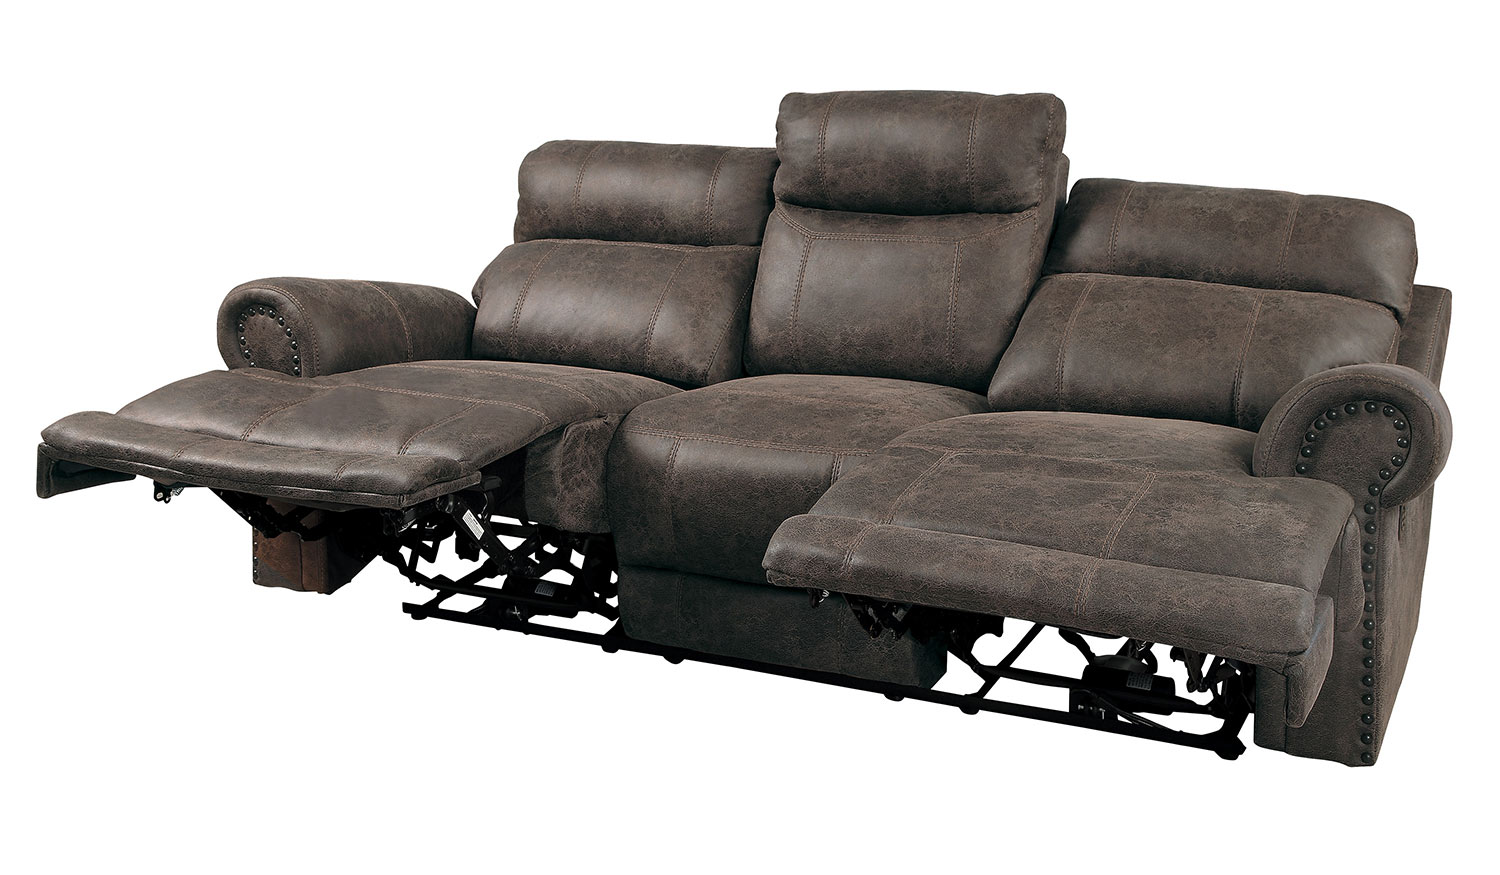 Homelegance Aggiano Double Reclining Sofa - Dark Brown